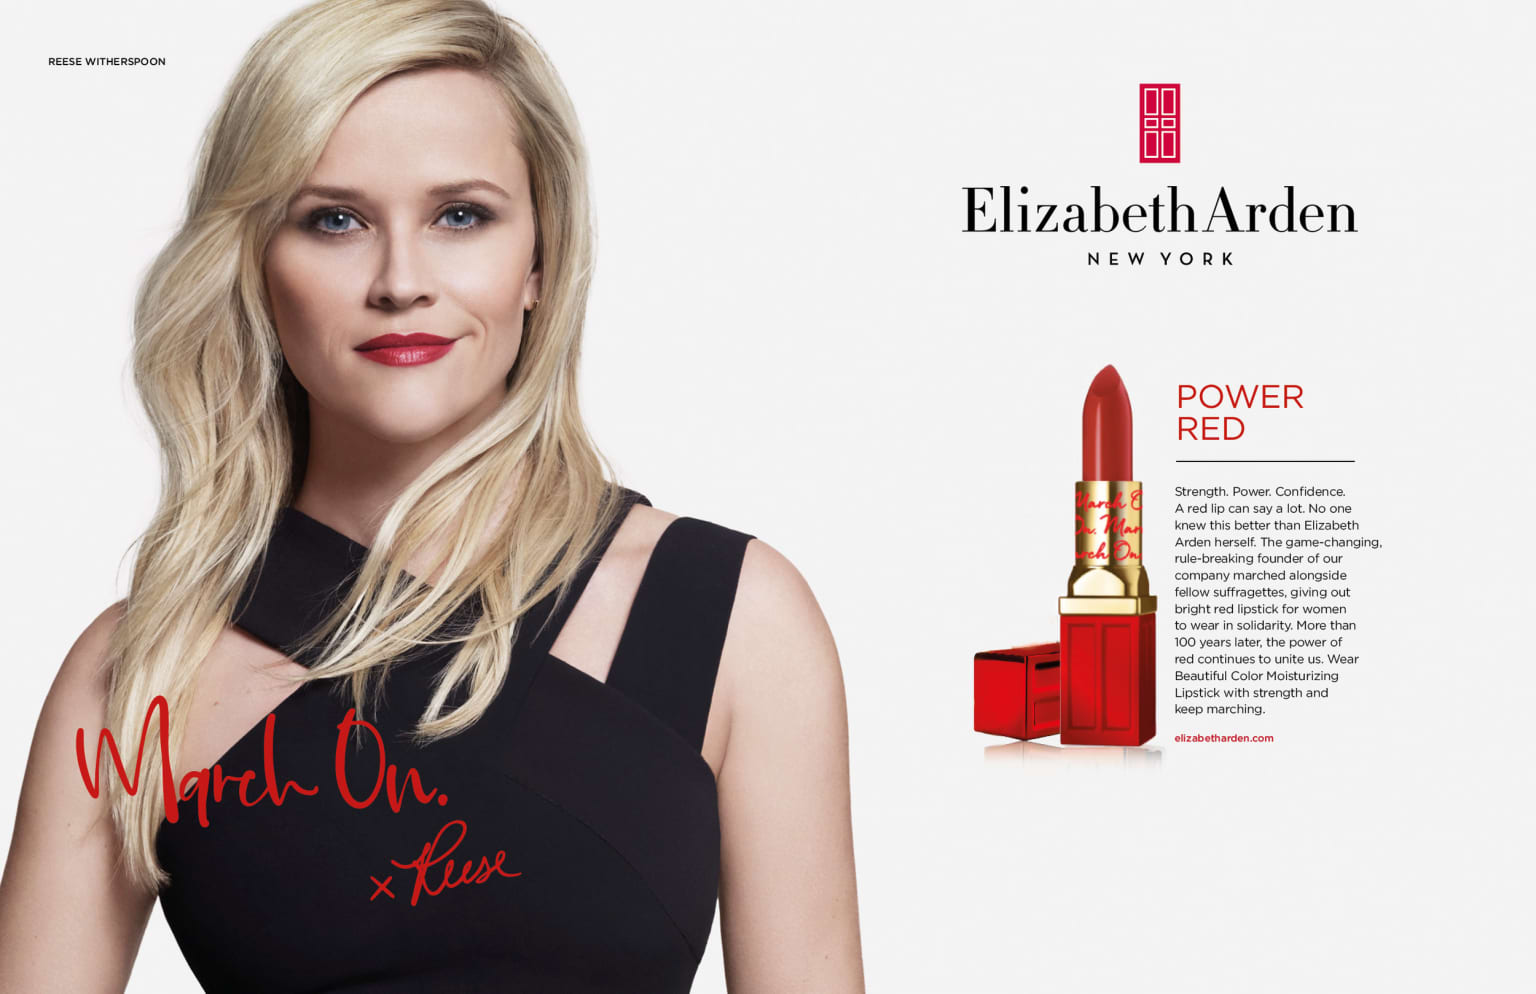 Elizabeth Arden ft. Reese Witherspoon